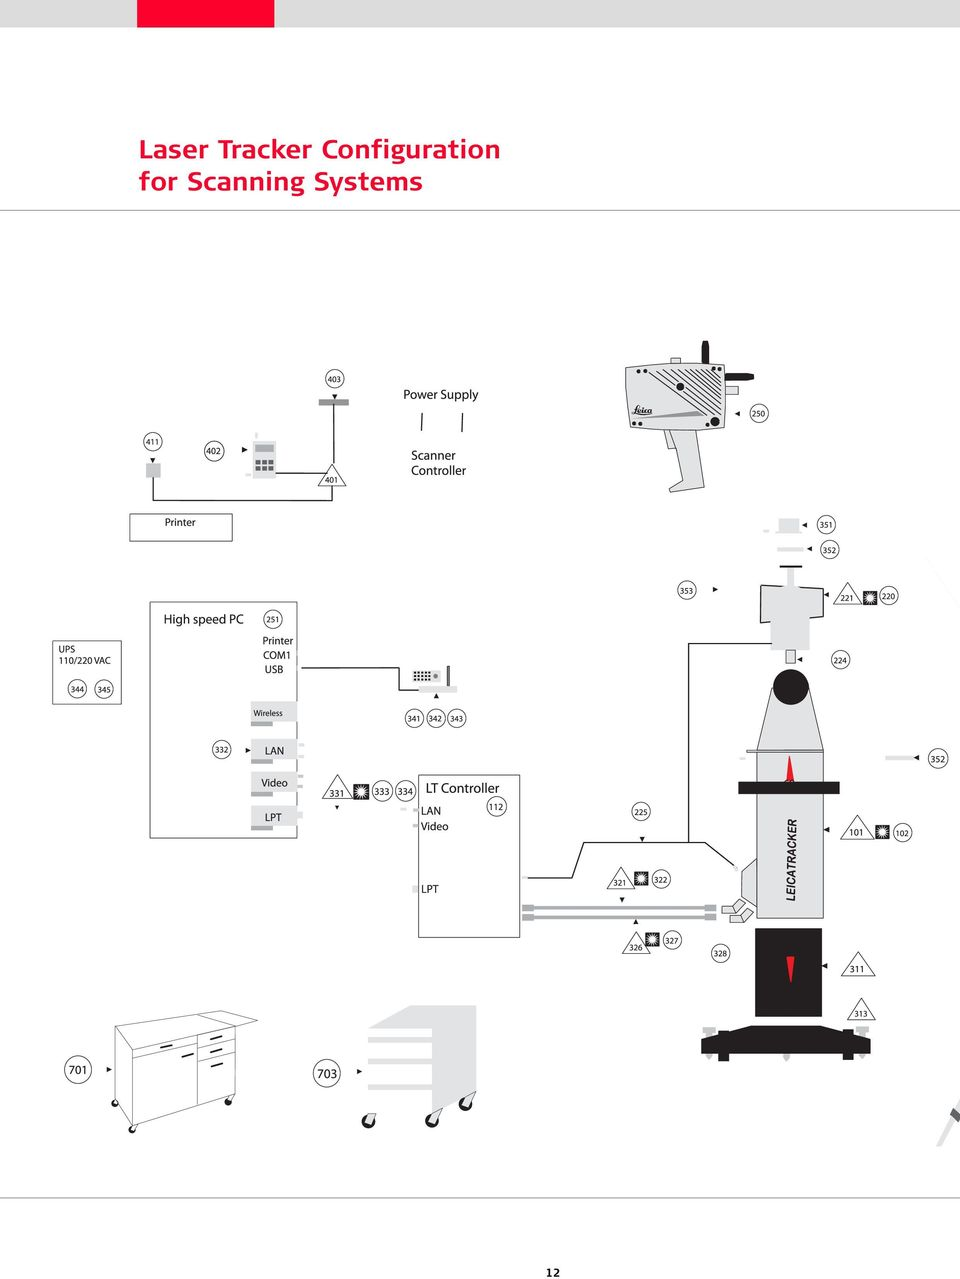 Leica Geosystems Metrology Accessories Catalog Pdf Laptop Repair Manual Schematics Boardview Datasheet Block Diagram 11 Laser Tracker Configuration For Scanning Systems 12